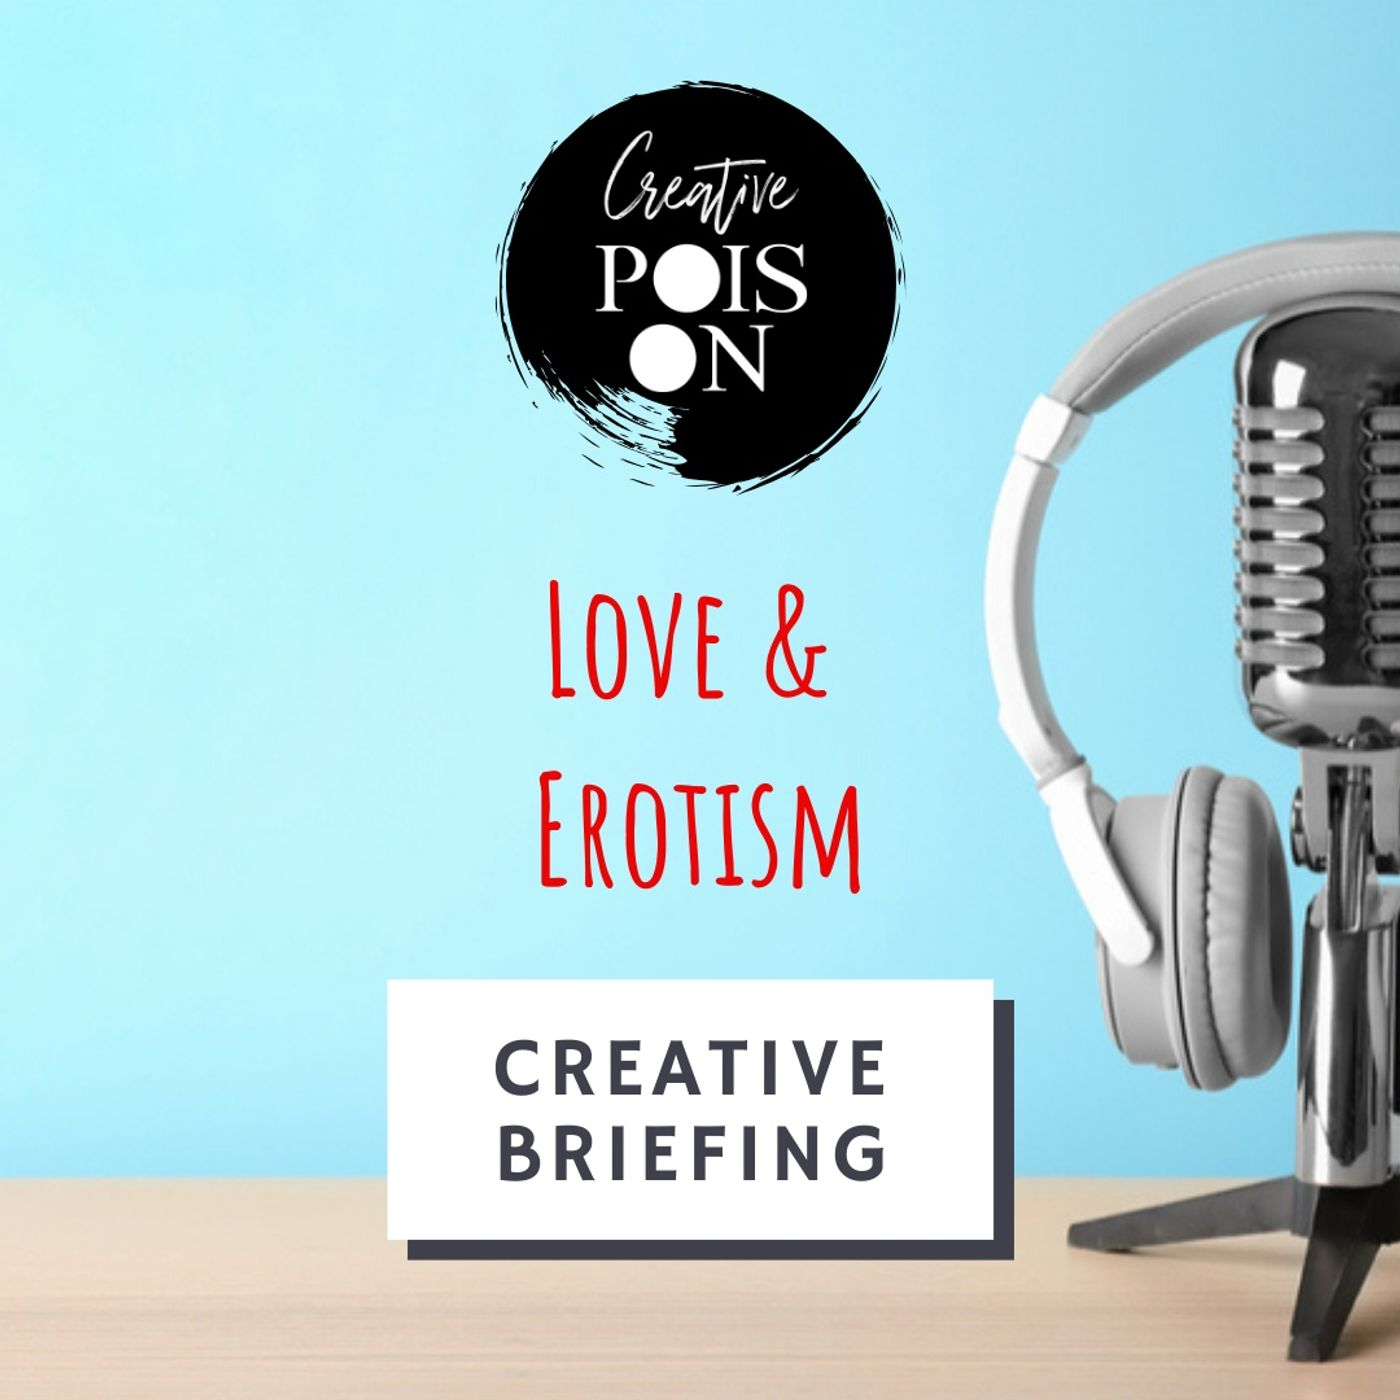 Creative Briefing. Love & Erotism. February 2020, Season 2